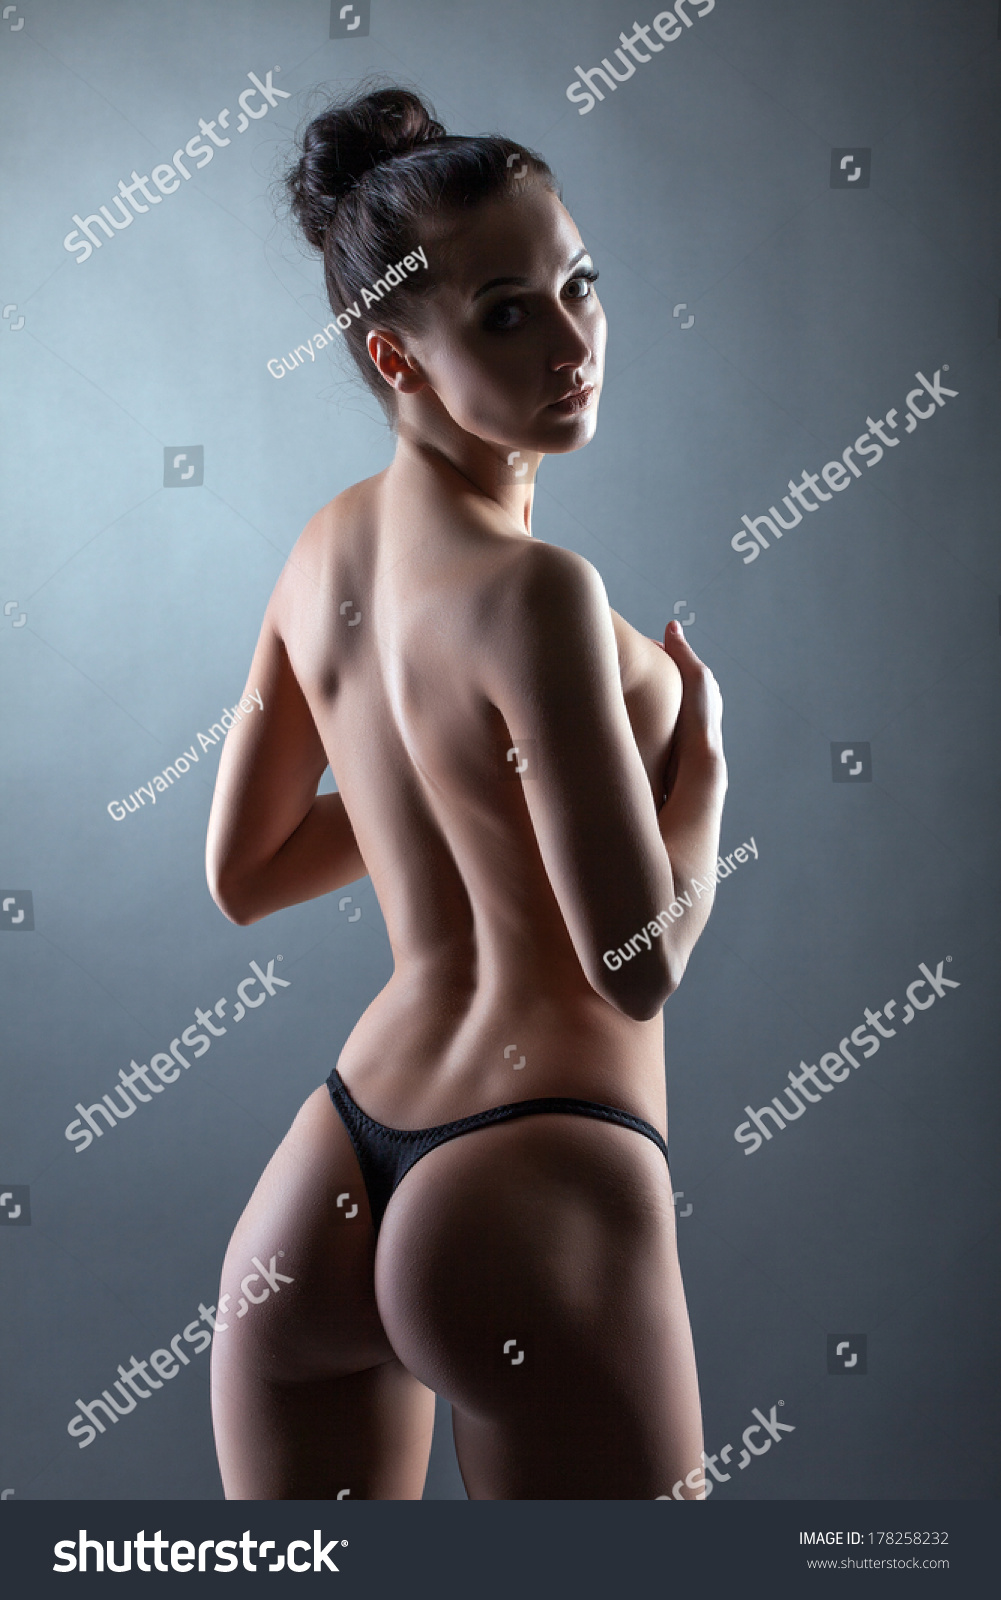 periods woman nude pics